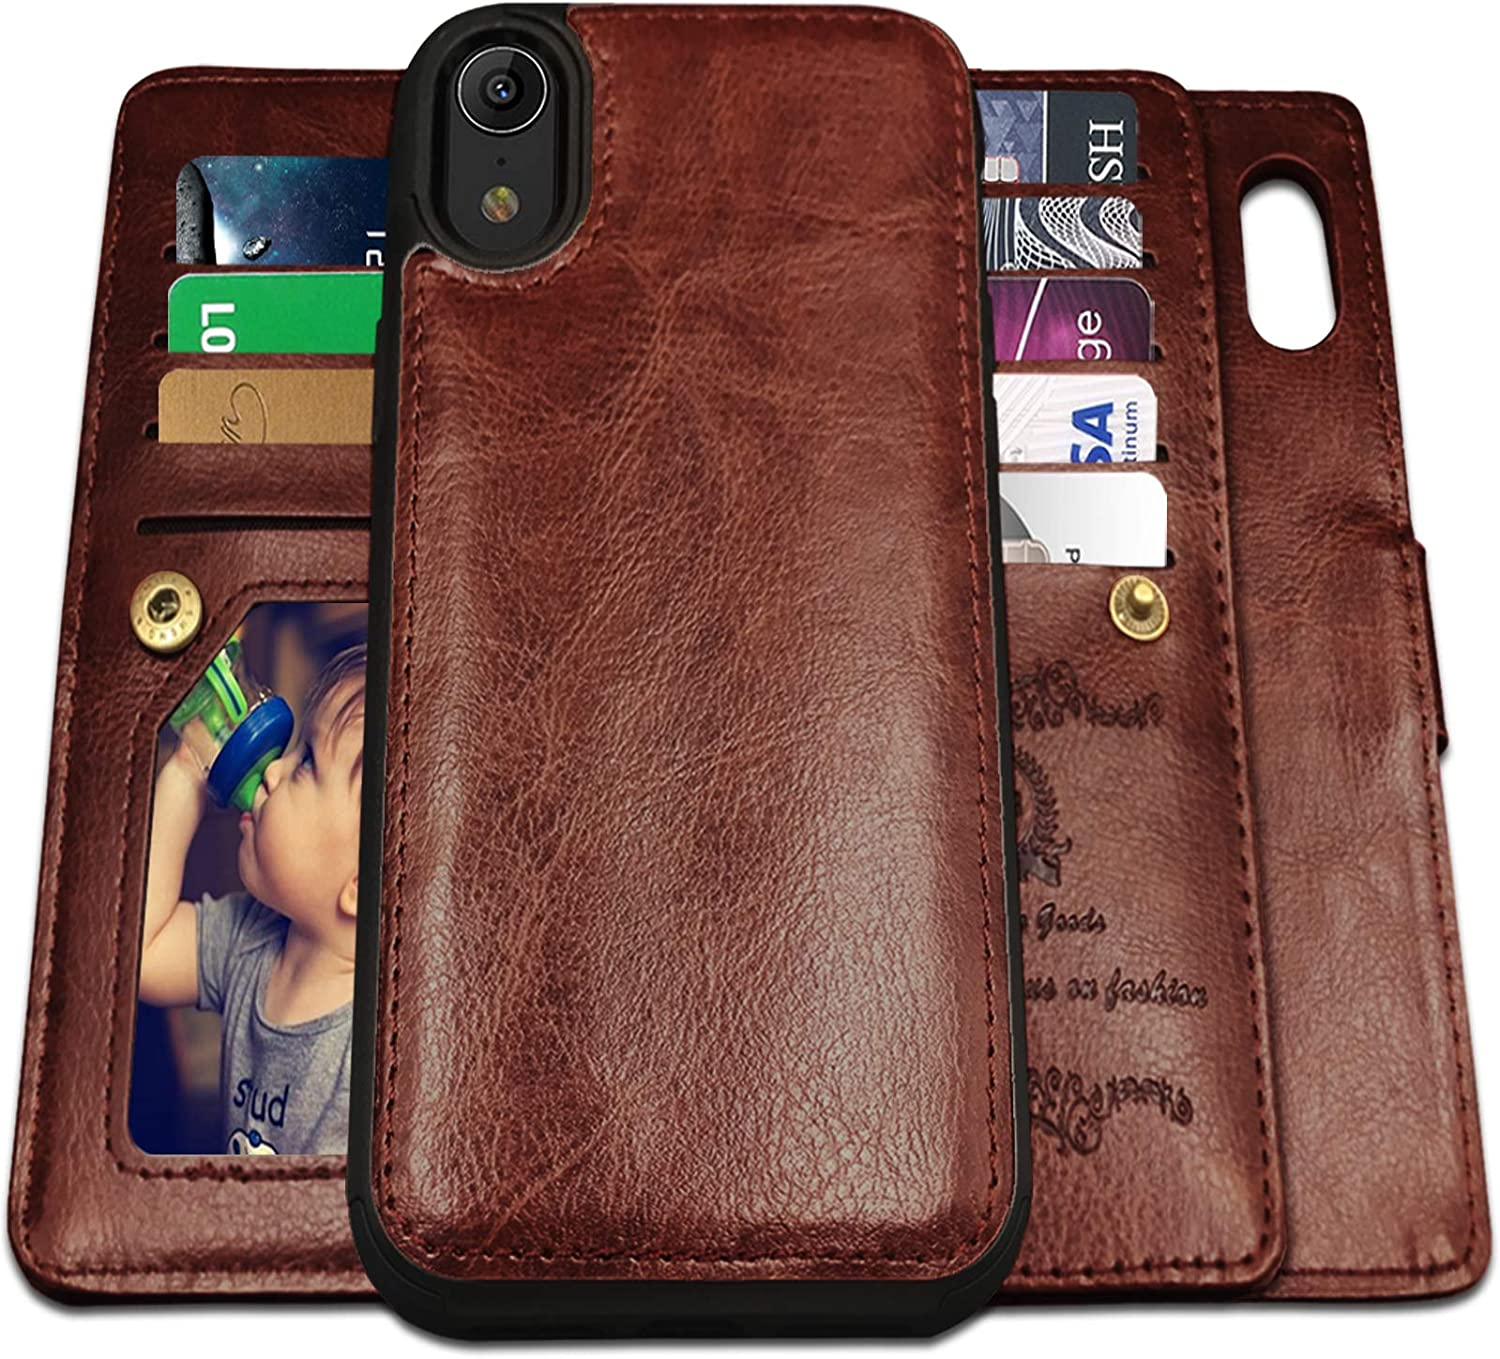 iPhone XR Cases, Magnetic Detachable Lanyard Wallet Case with 9 Card Slots, Kickstand, Hnad Strap for iPhone XR (2018 Released), CASEOWL 2 in 1 Folio Flip Premium Leather Removable TPU Case(Brown)